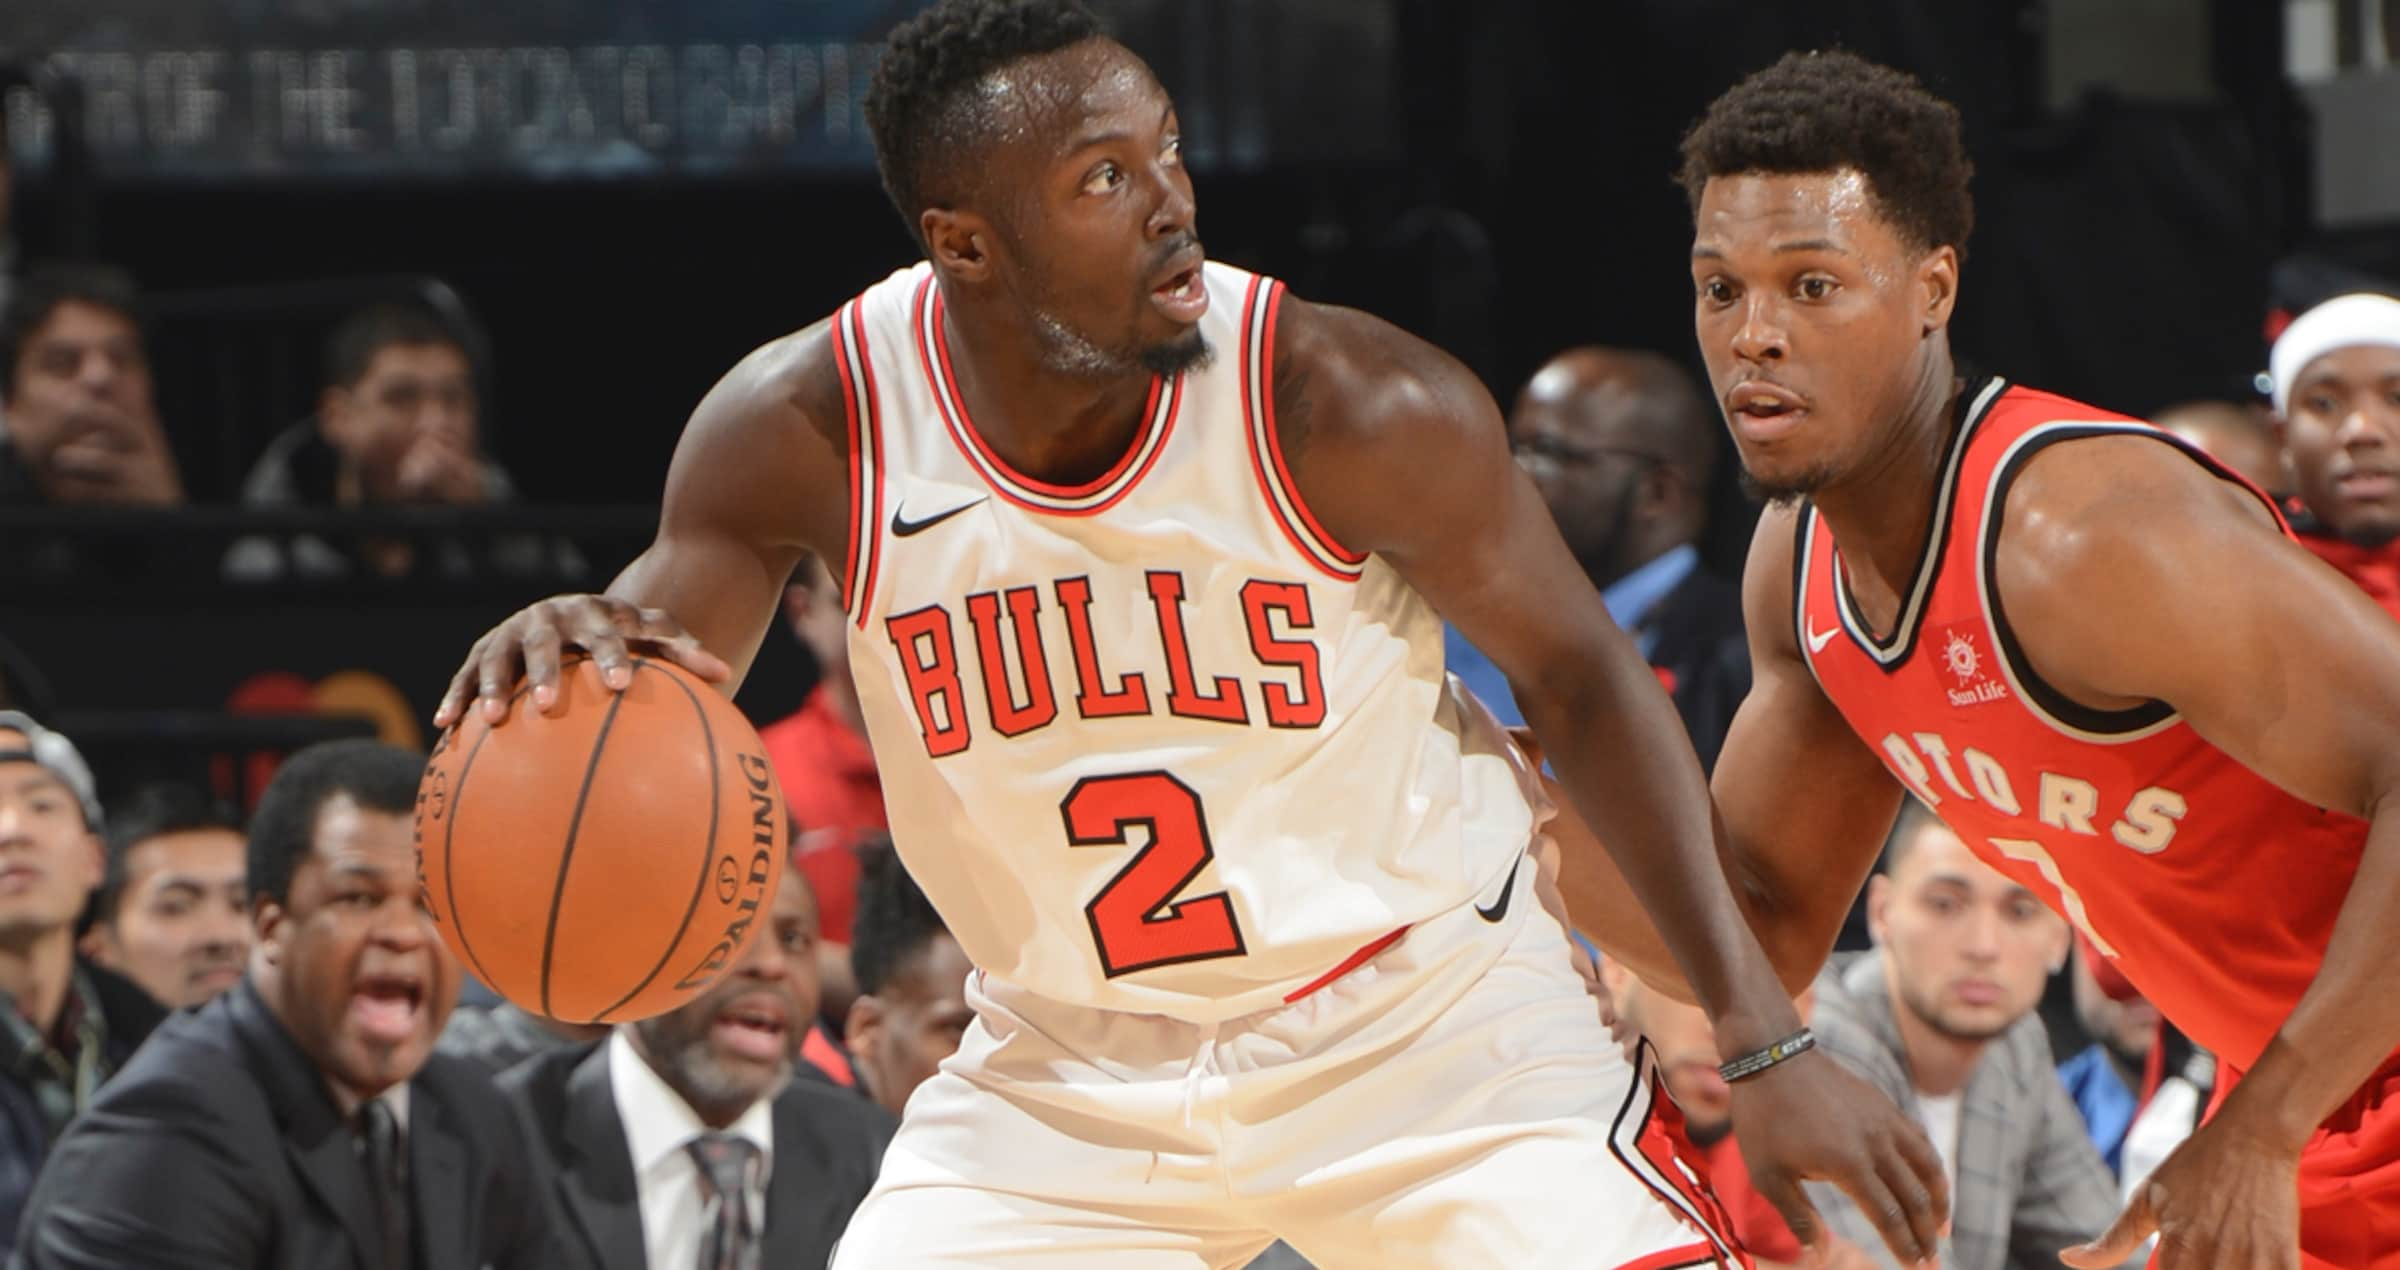 Jerian Grant is guarded by Kyle Lowry of the Toronto Raptors